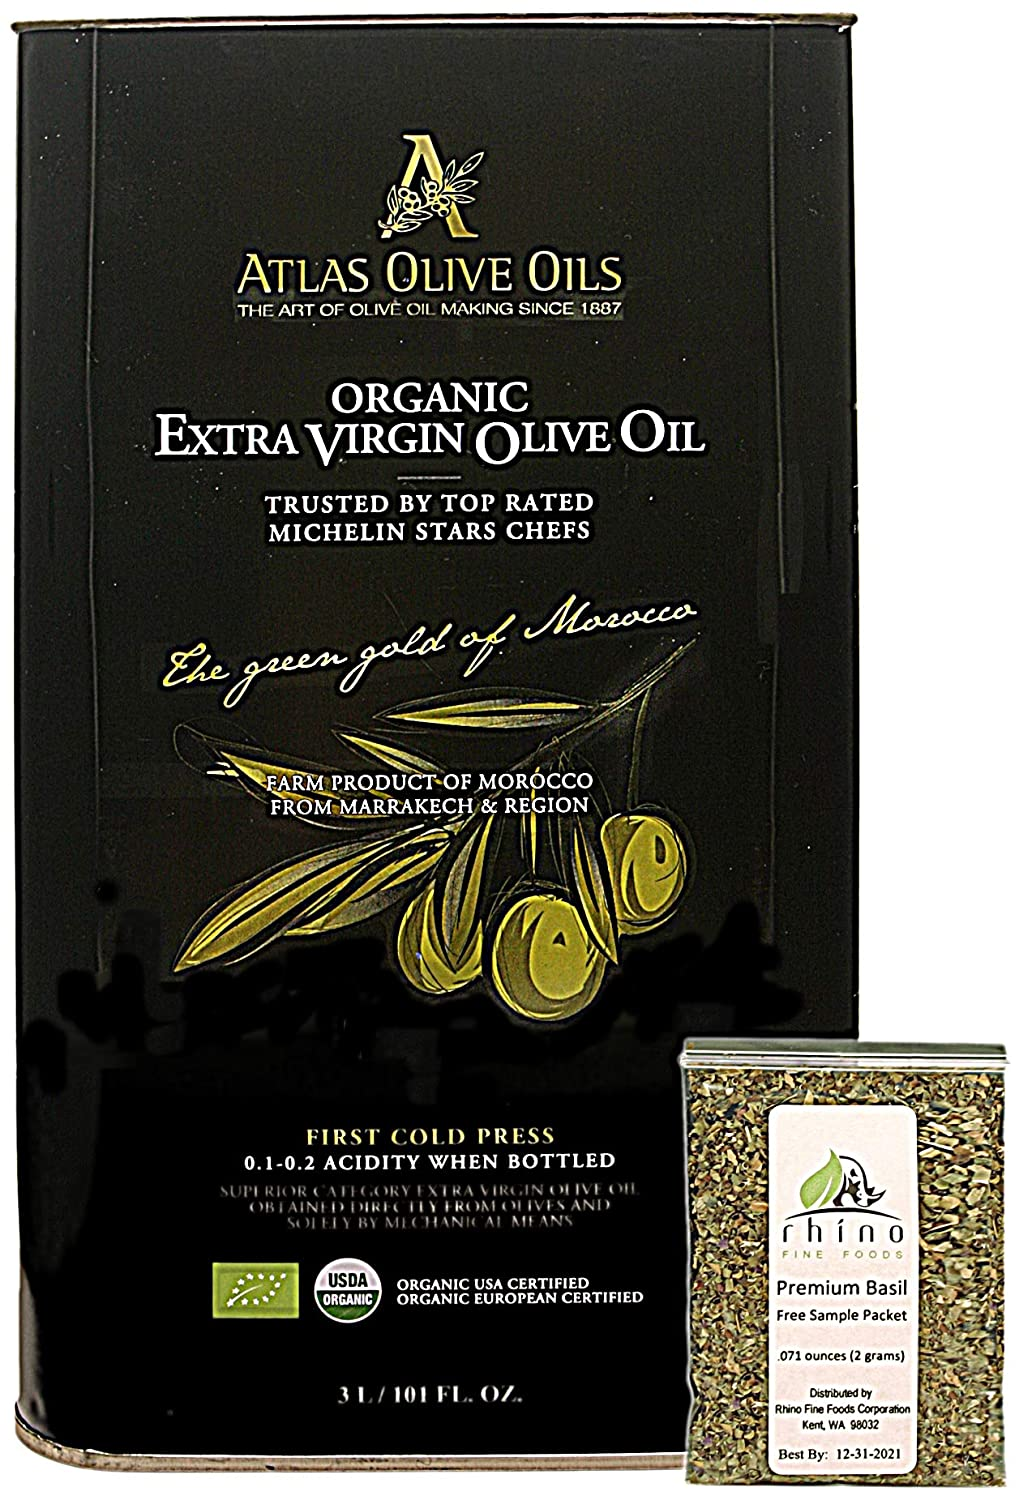 Atlas Olive Oils SARL, Moroccan Organic Extra Virgin Olive Oil (EVOO), 3 Liter, Cold Pressed, Polyphenol Rich, Imported from Morocco, 101 Fl Oz + Includes-Free Basil from Rhino Fine Foods, .071 Oz